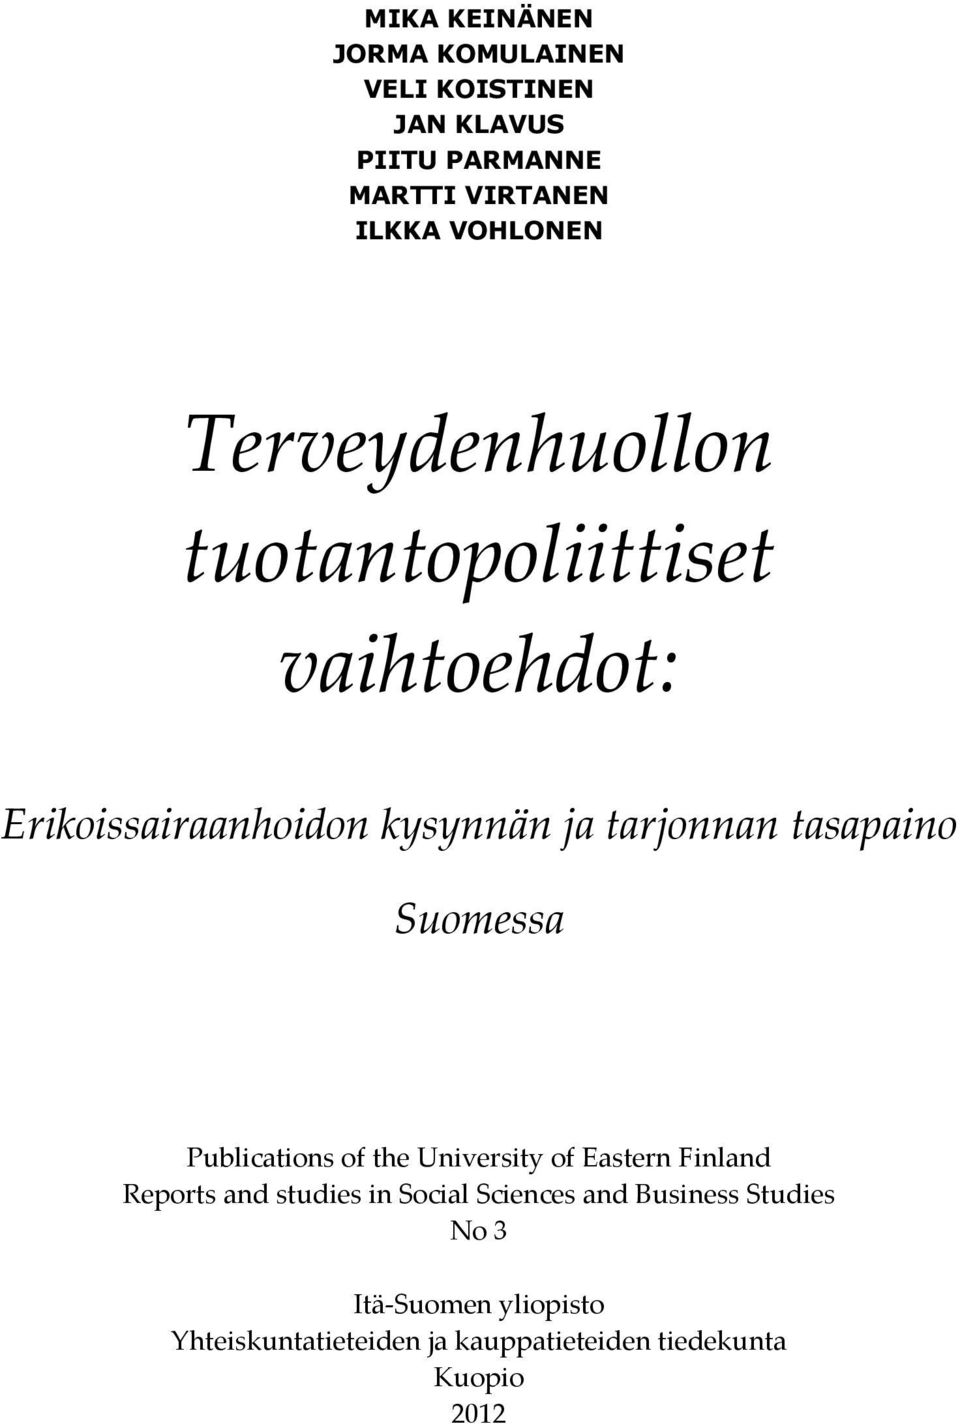 Suomessa Publications of the University of Eastern Finland Reports and studies in Social Sciences and